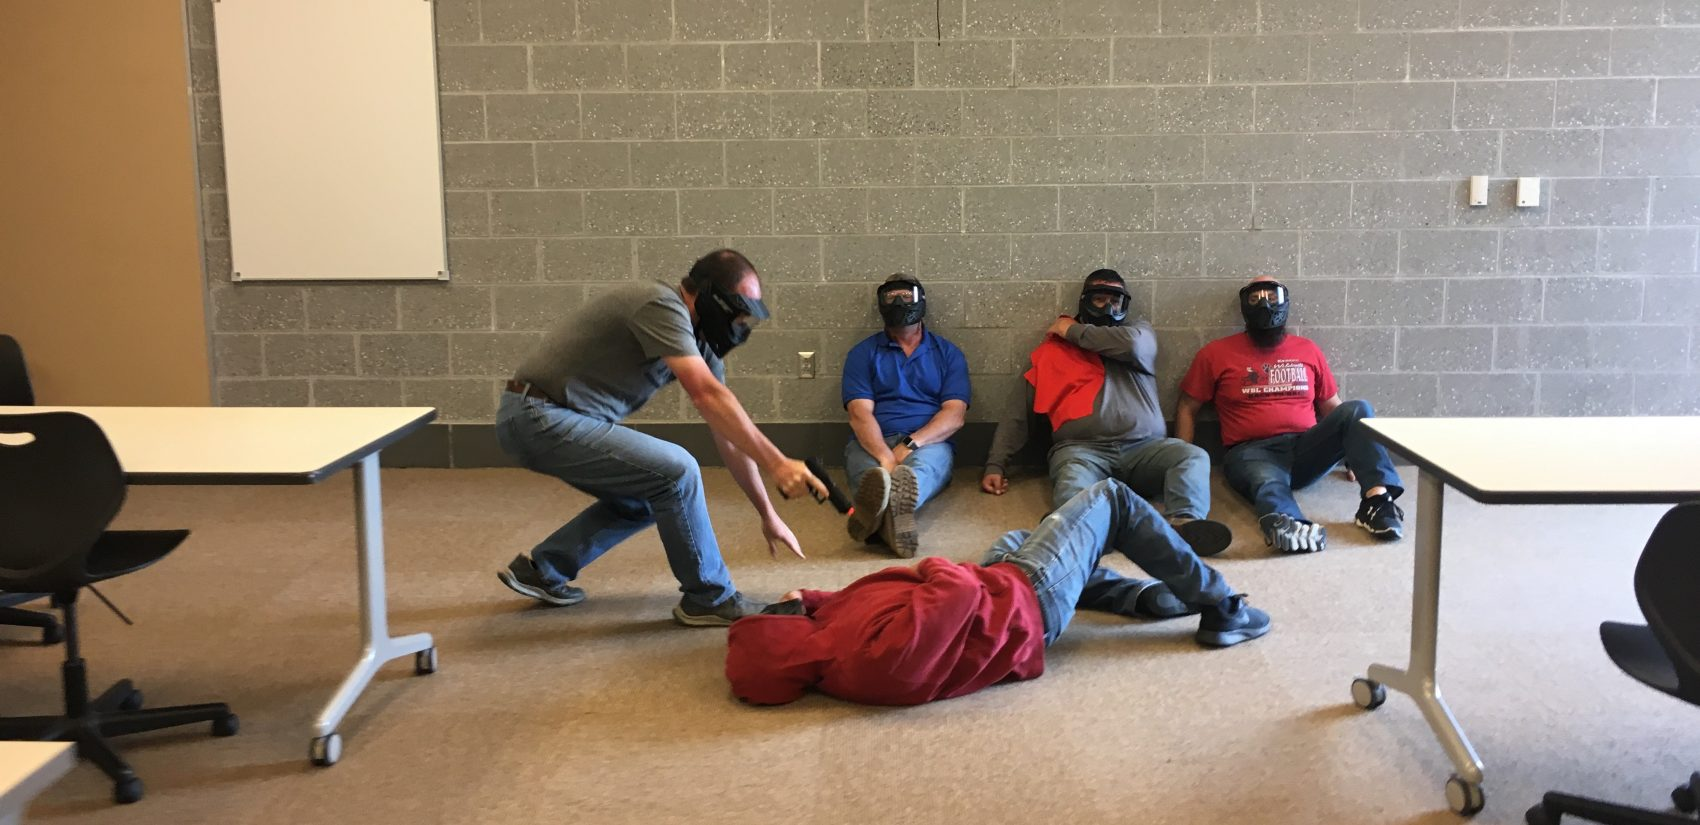 Teachers practice responding to active shooter scenarios at a high school in Ohio. Cerino tells the trainees pretending to be students,